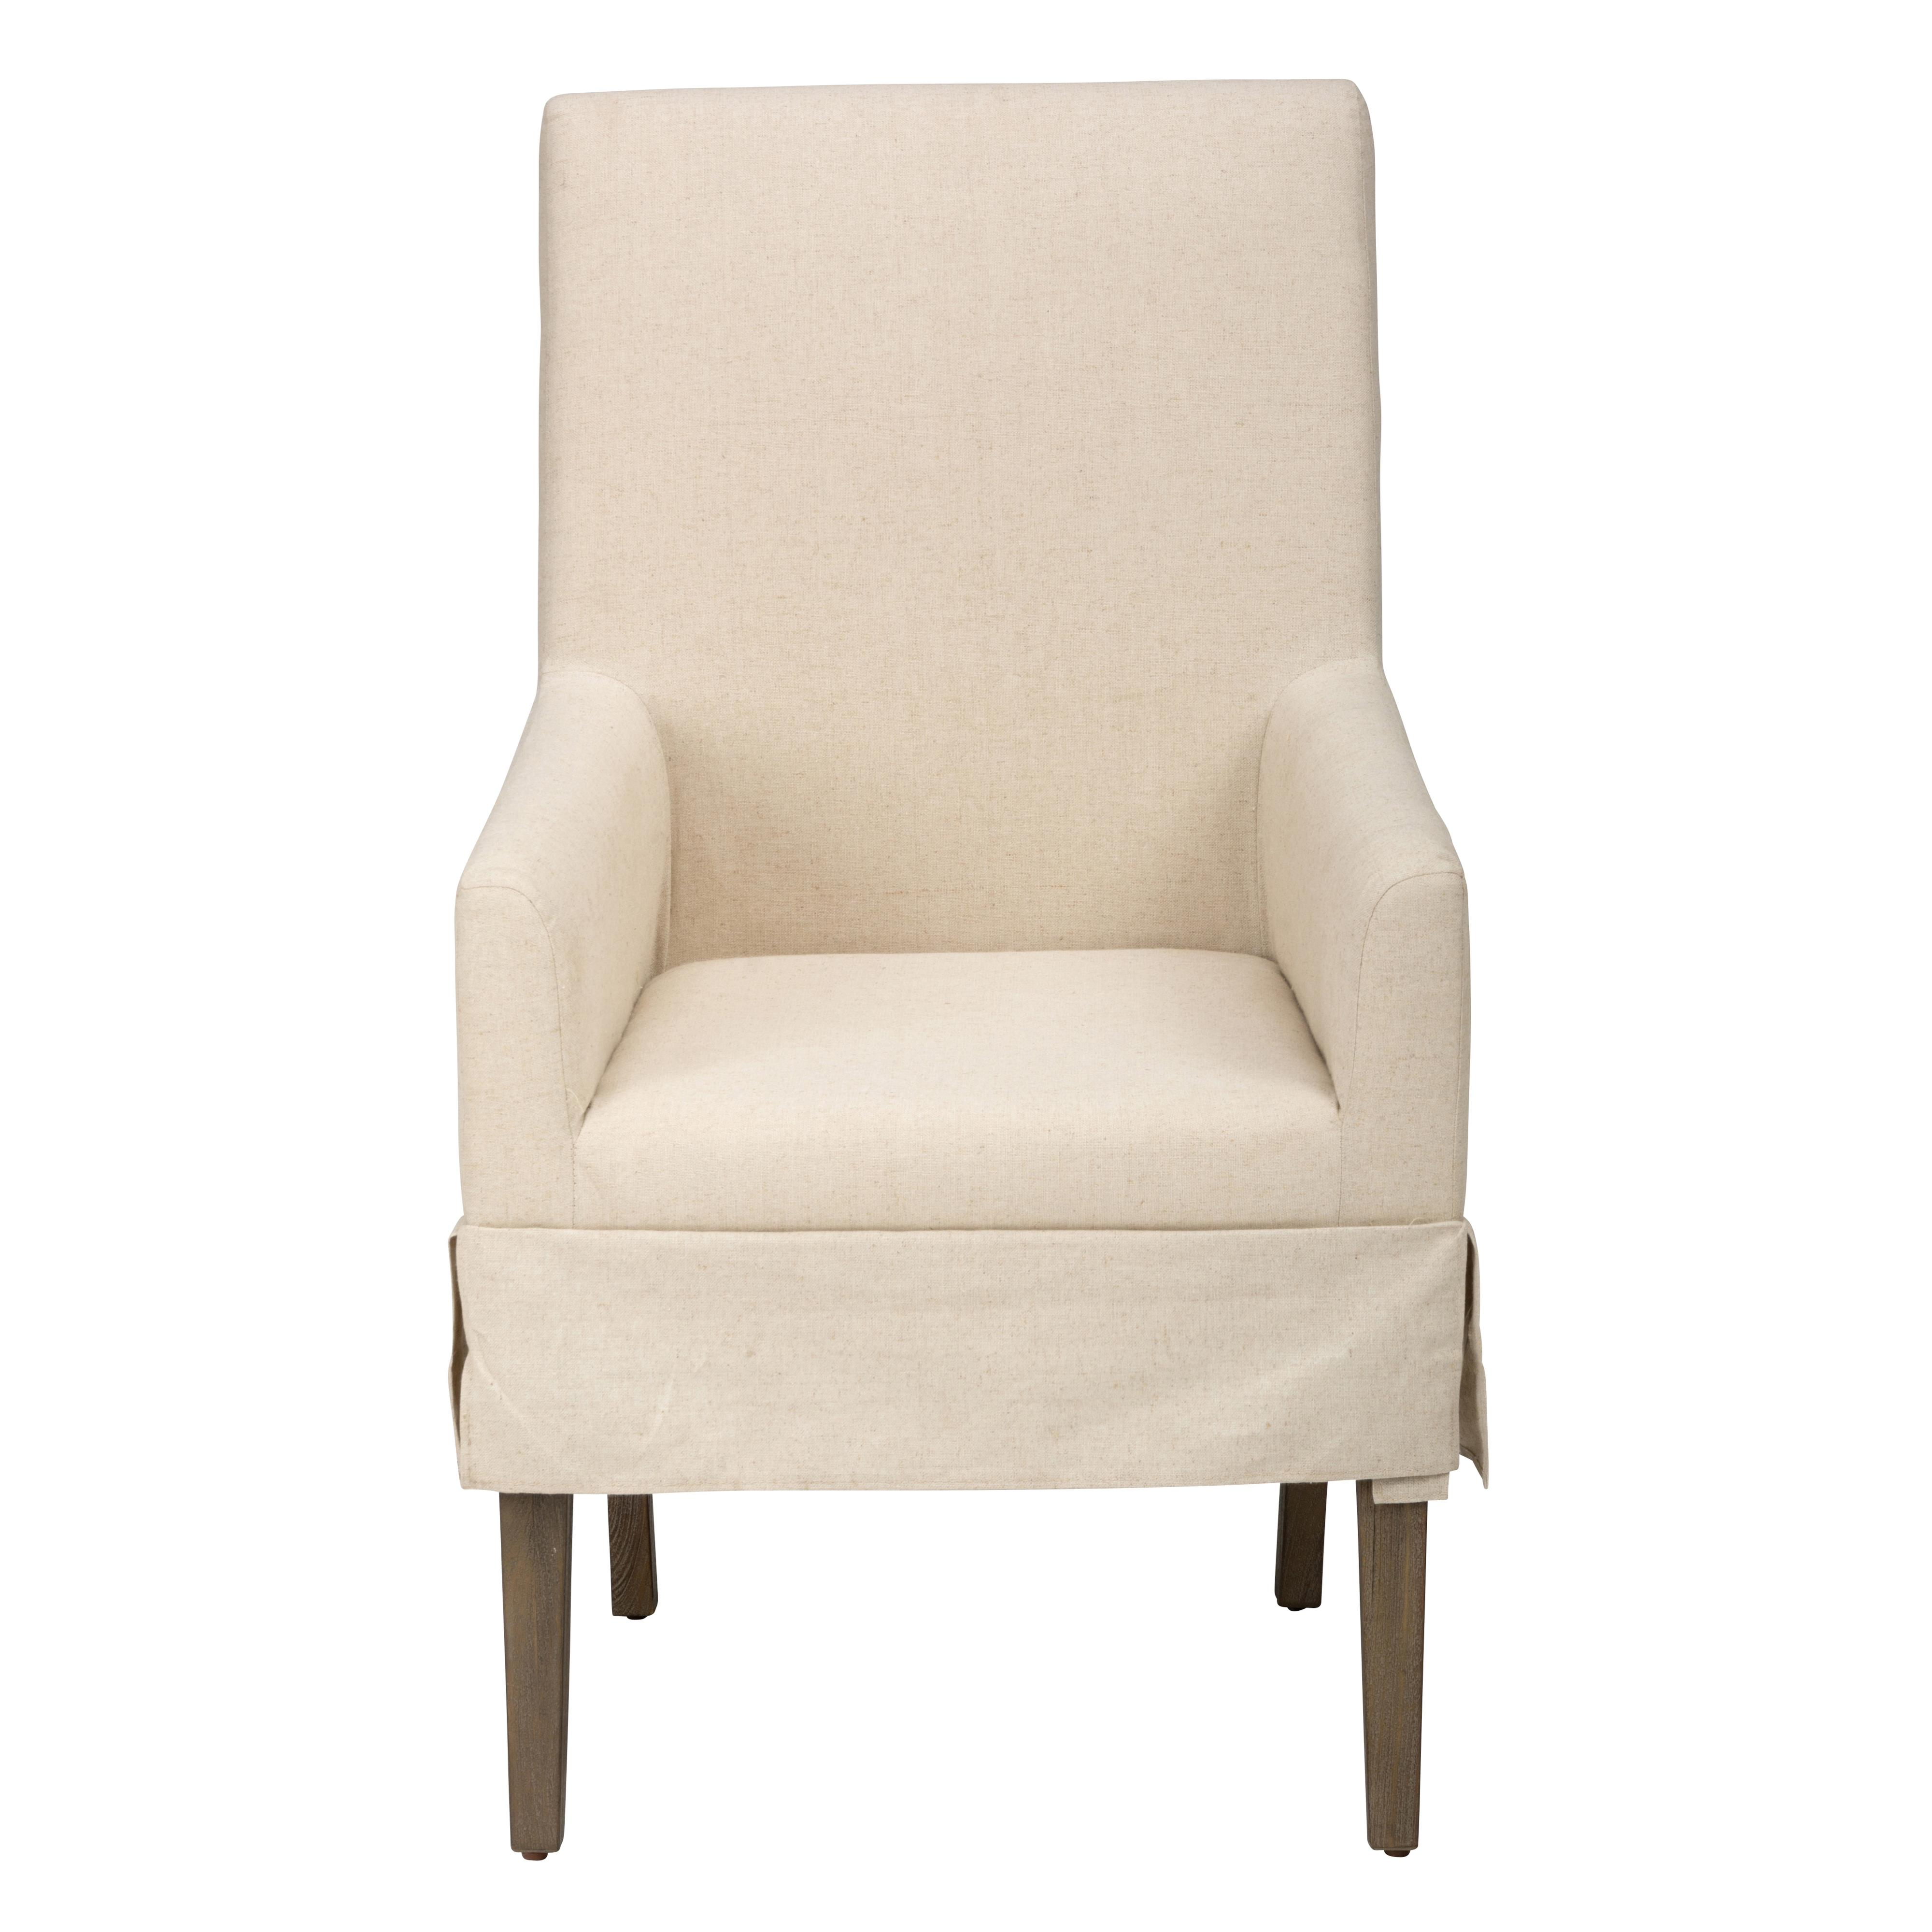 Jofran Hampton Slipcovered Dining Chair with Arm Rests - Item Number: 872-147KD